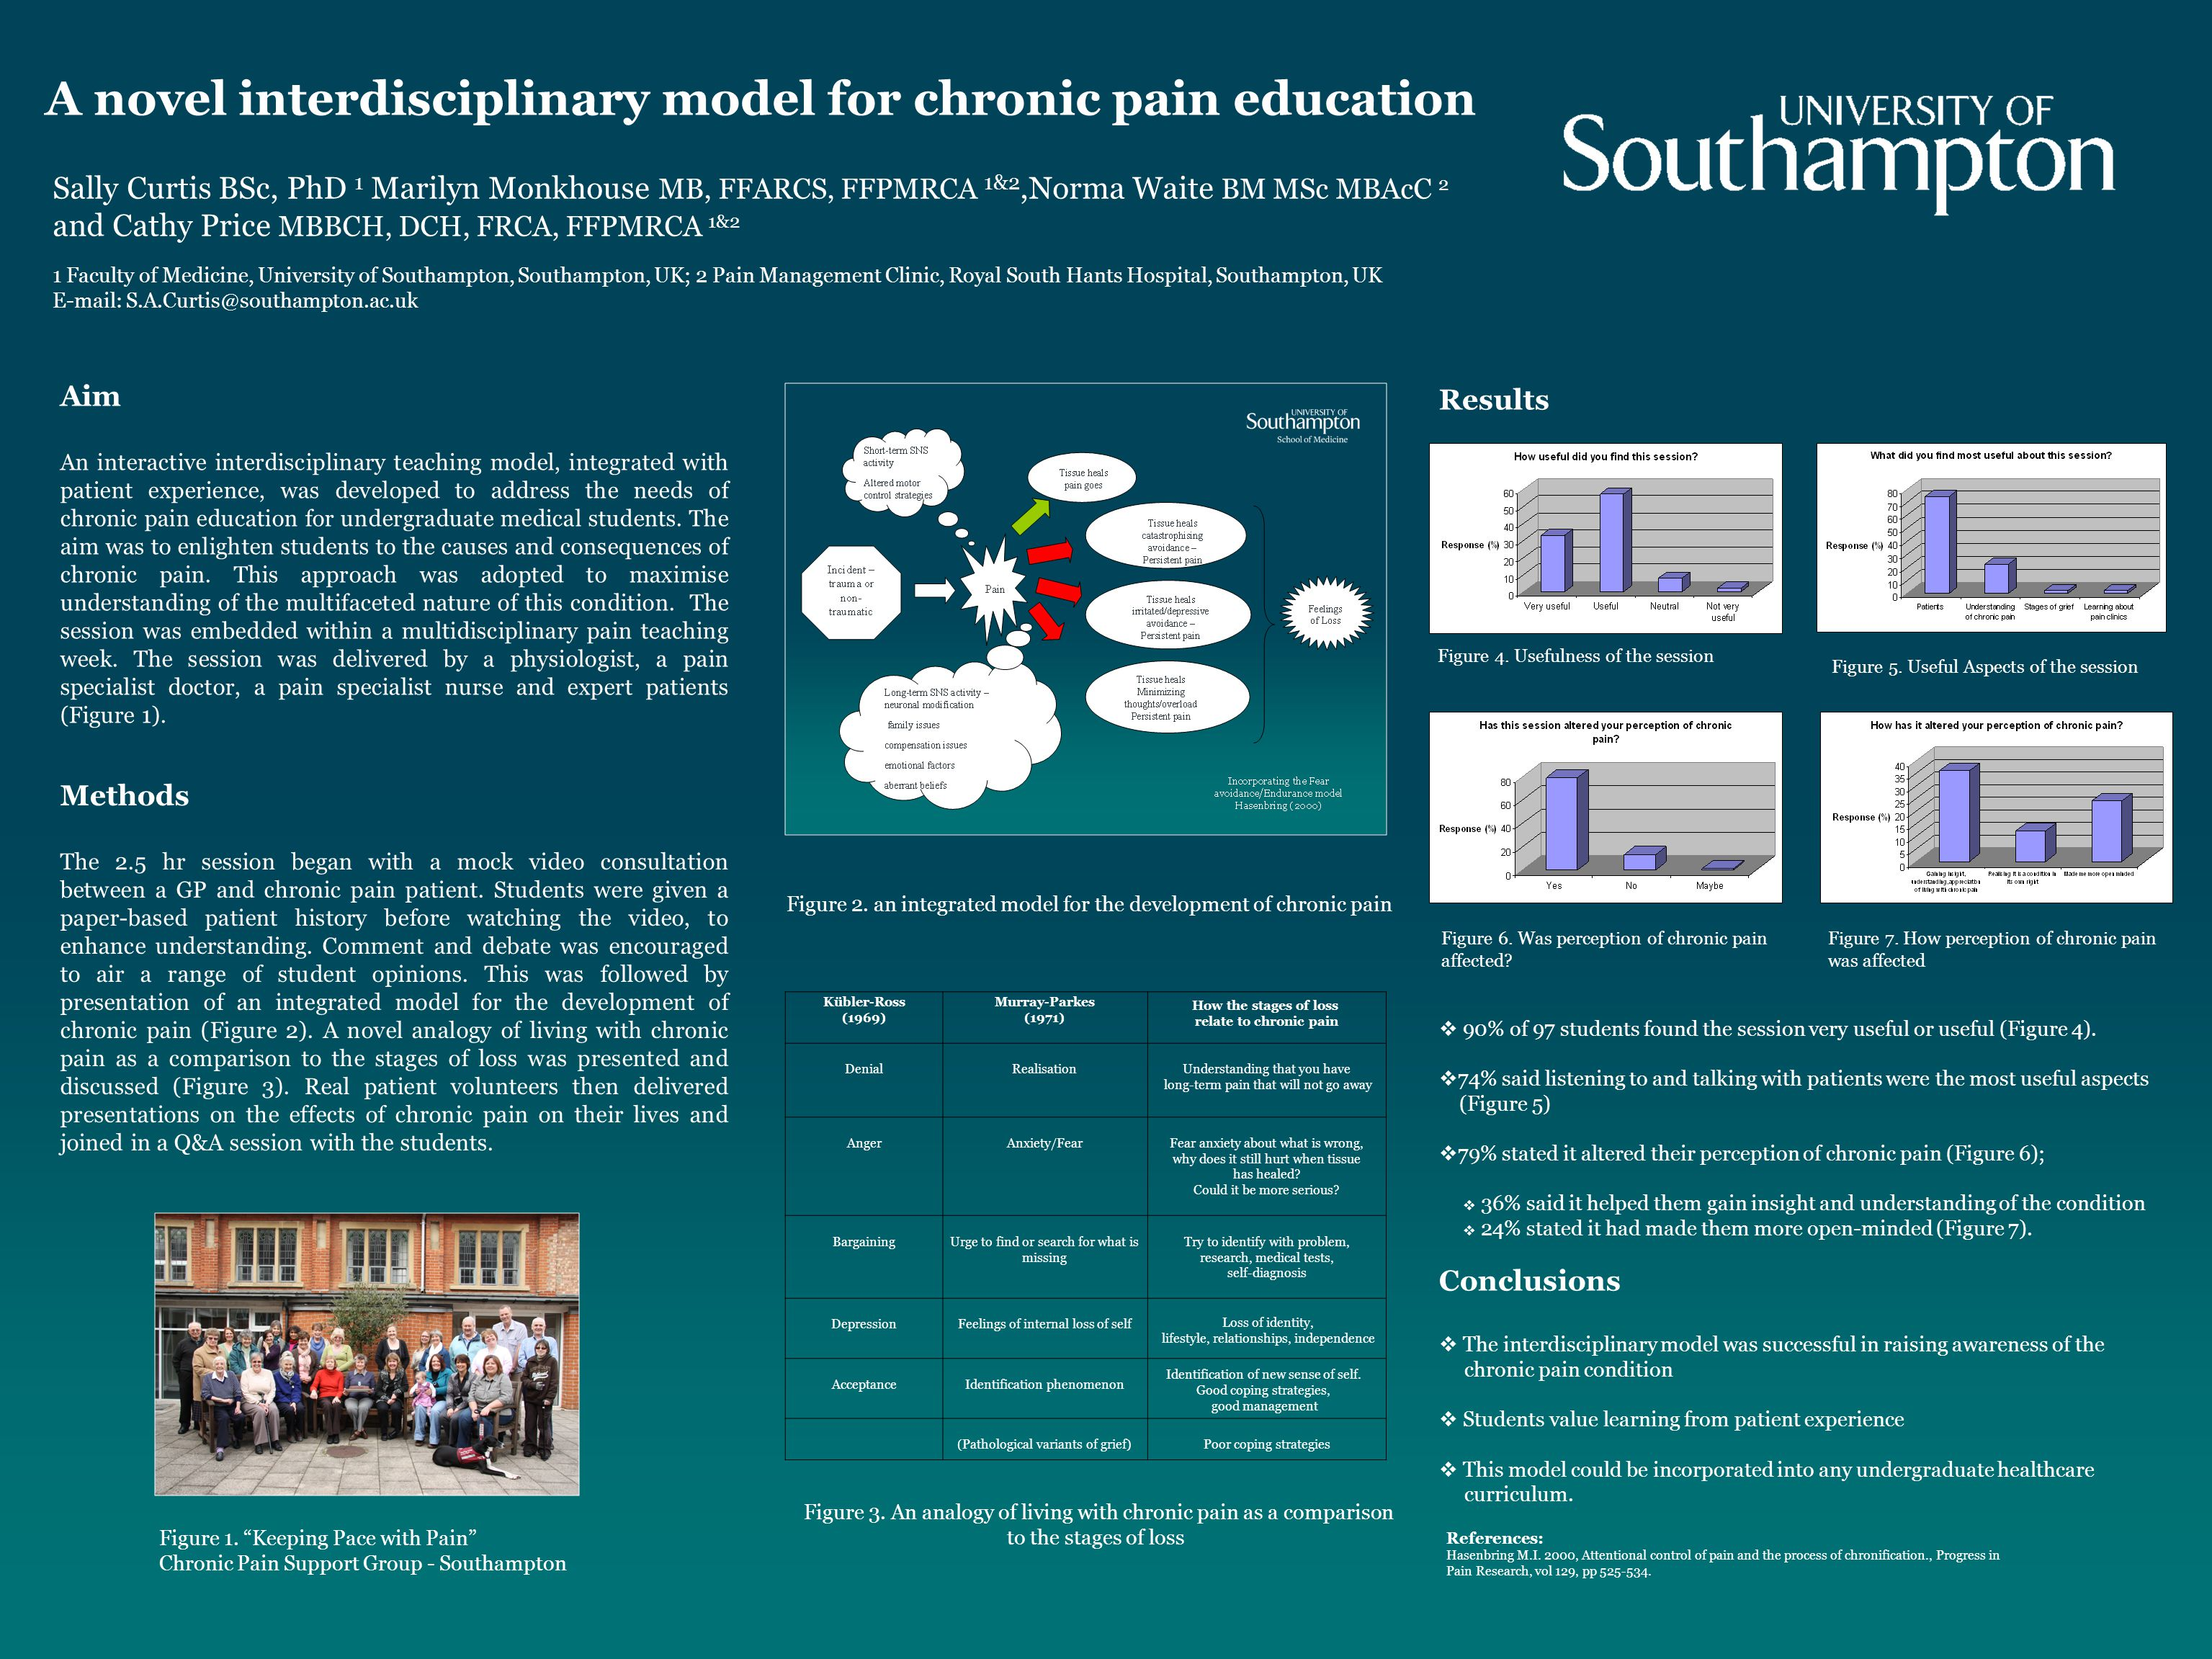 A novel interdisciplinary model for chronic pain education Sally Curtis BSc, PhD 1 Marilyn Monkhouse MB, FFARCS, FFPMRCA 1&2,Norma Waite BM MSc MBAcC 2 and Cathy Price MBBCH, DCH, FRCA, FFPMRCA 1&2 1 Faculty of Medicine, University of Southampton, Southampton, UK; 2 Pain Management Clinic, Royal South Hants Hospital, Southampton, UK E-mail: S.A.Curtis@southampton.ac.uk Aim An interactive interdisciplinary teaching model, integrated with patient experience, was developed to address the needs of chronic pain education for undergraduate medical students.